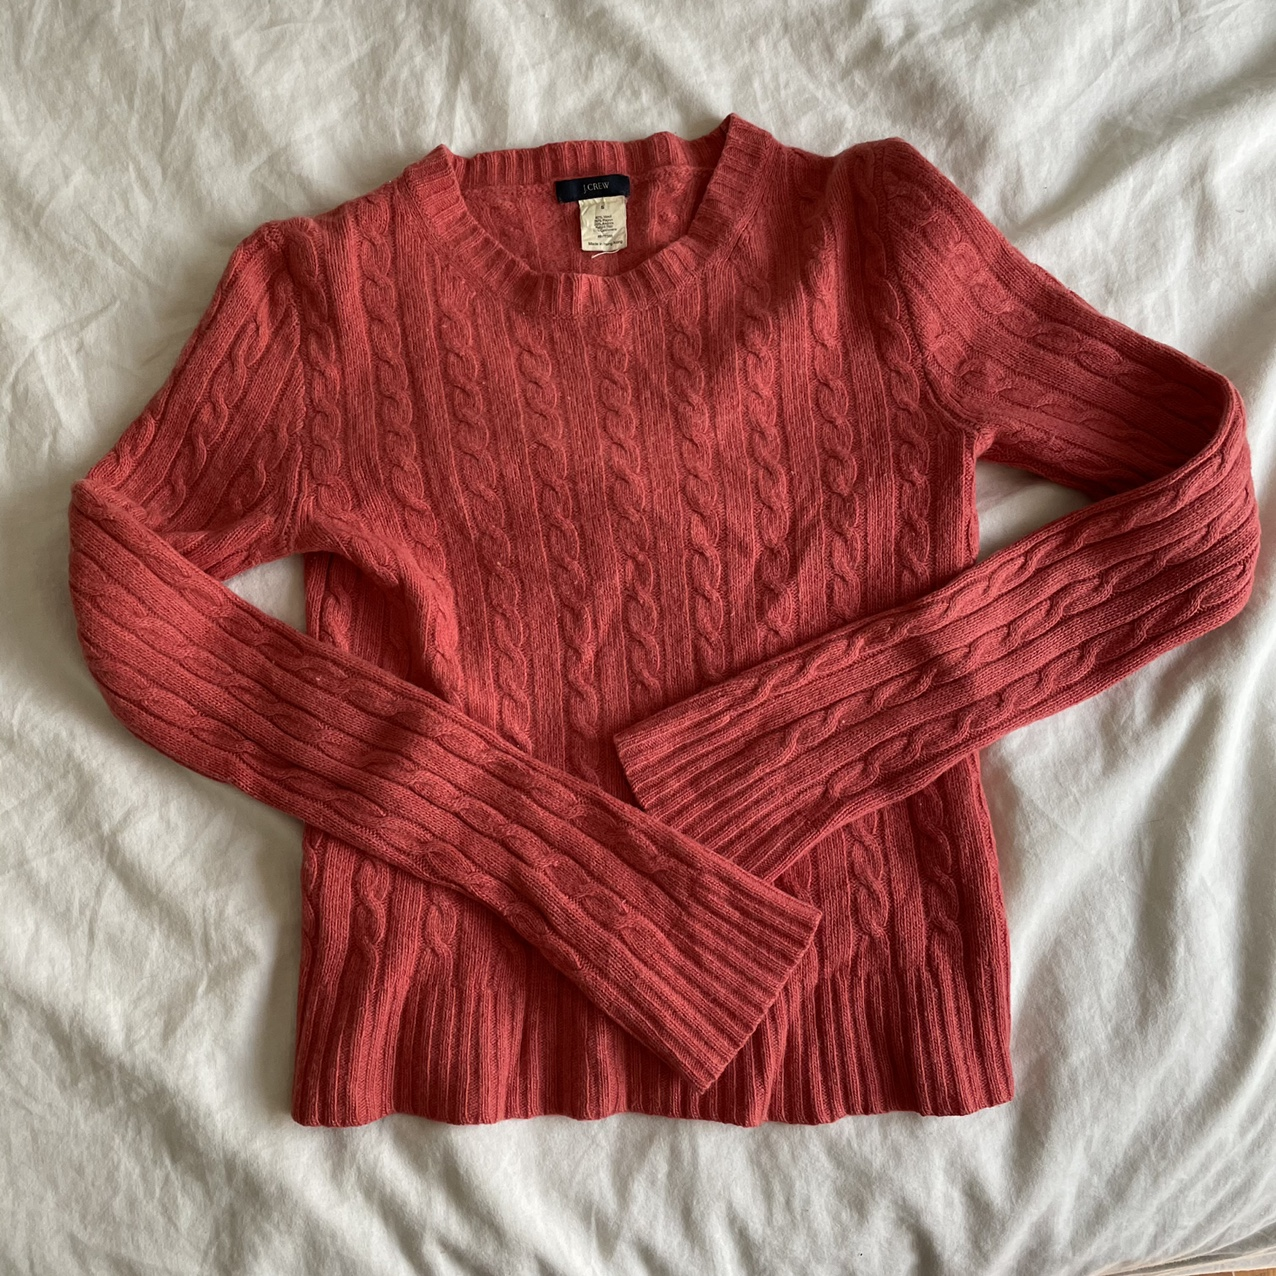 Product Image 1 - J. Crew Cable Knit Long